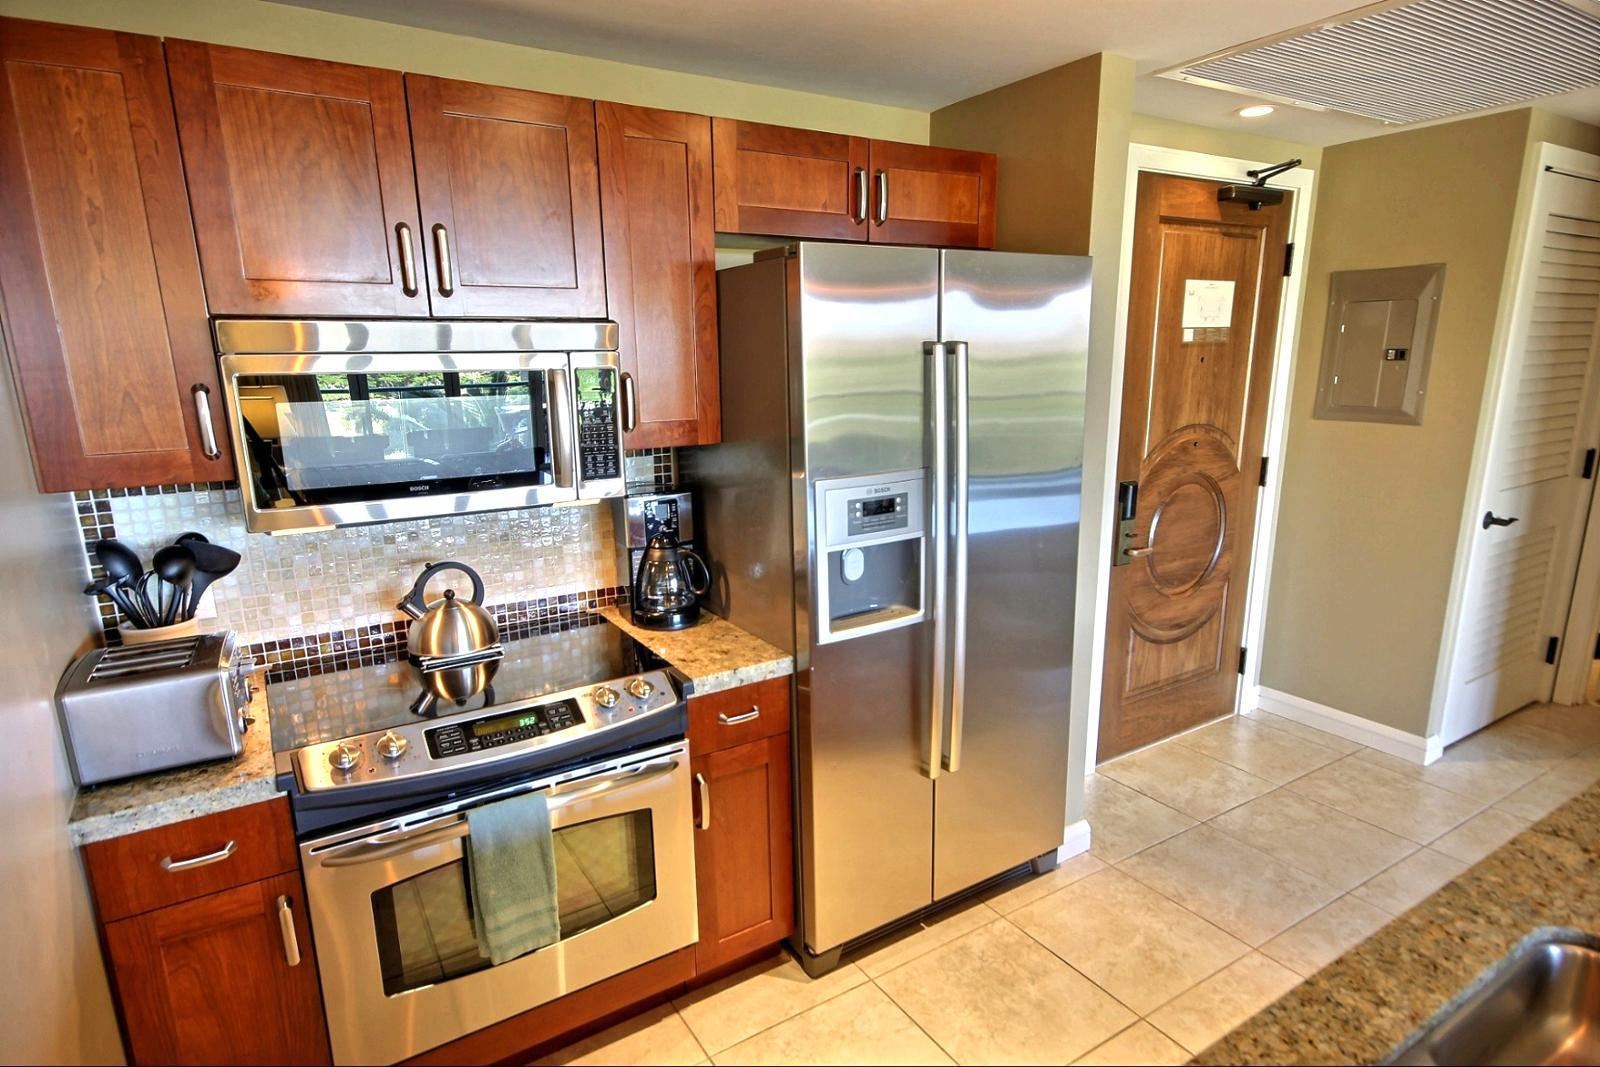 This kitchen has everything you need and the comforts of home to prepare all your meals